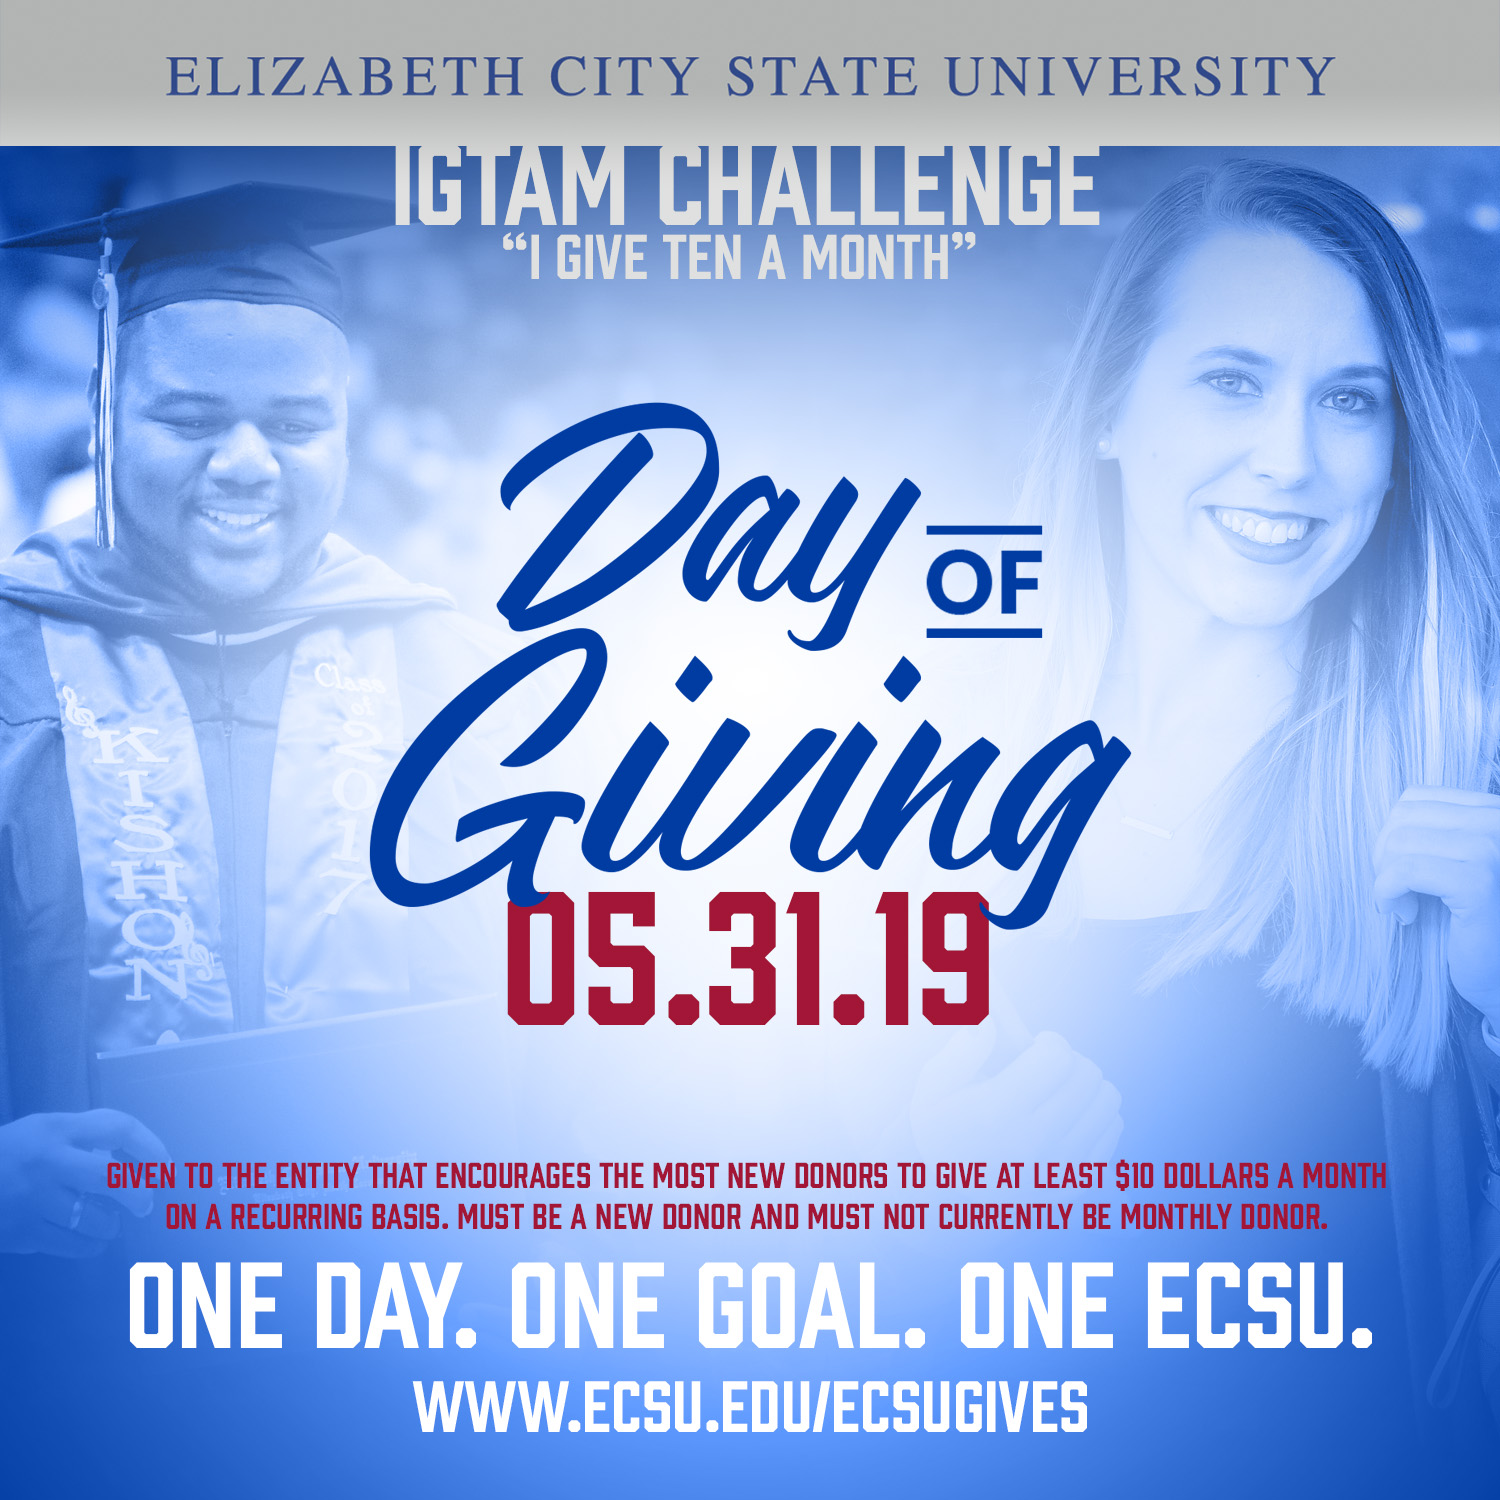 Ecsu day of giving 2019 sm igtam challenge